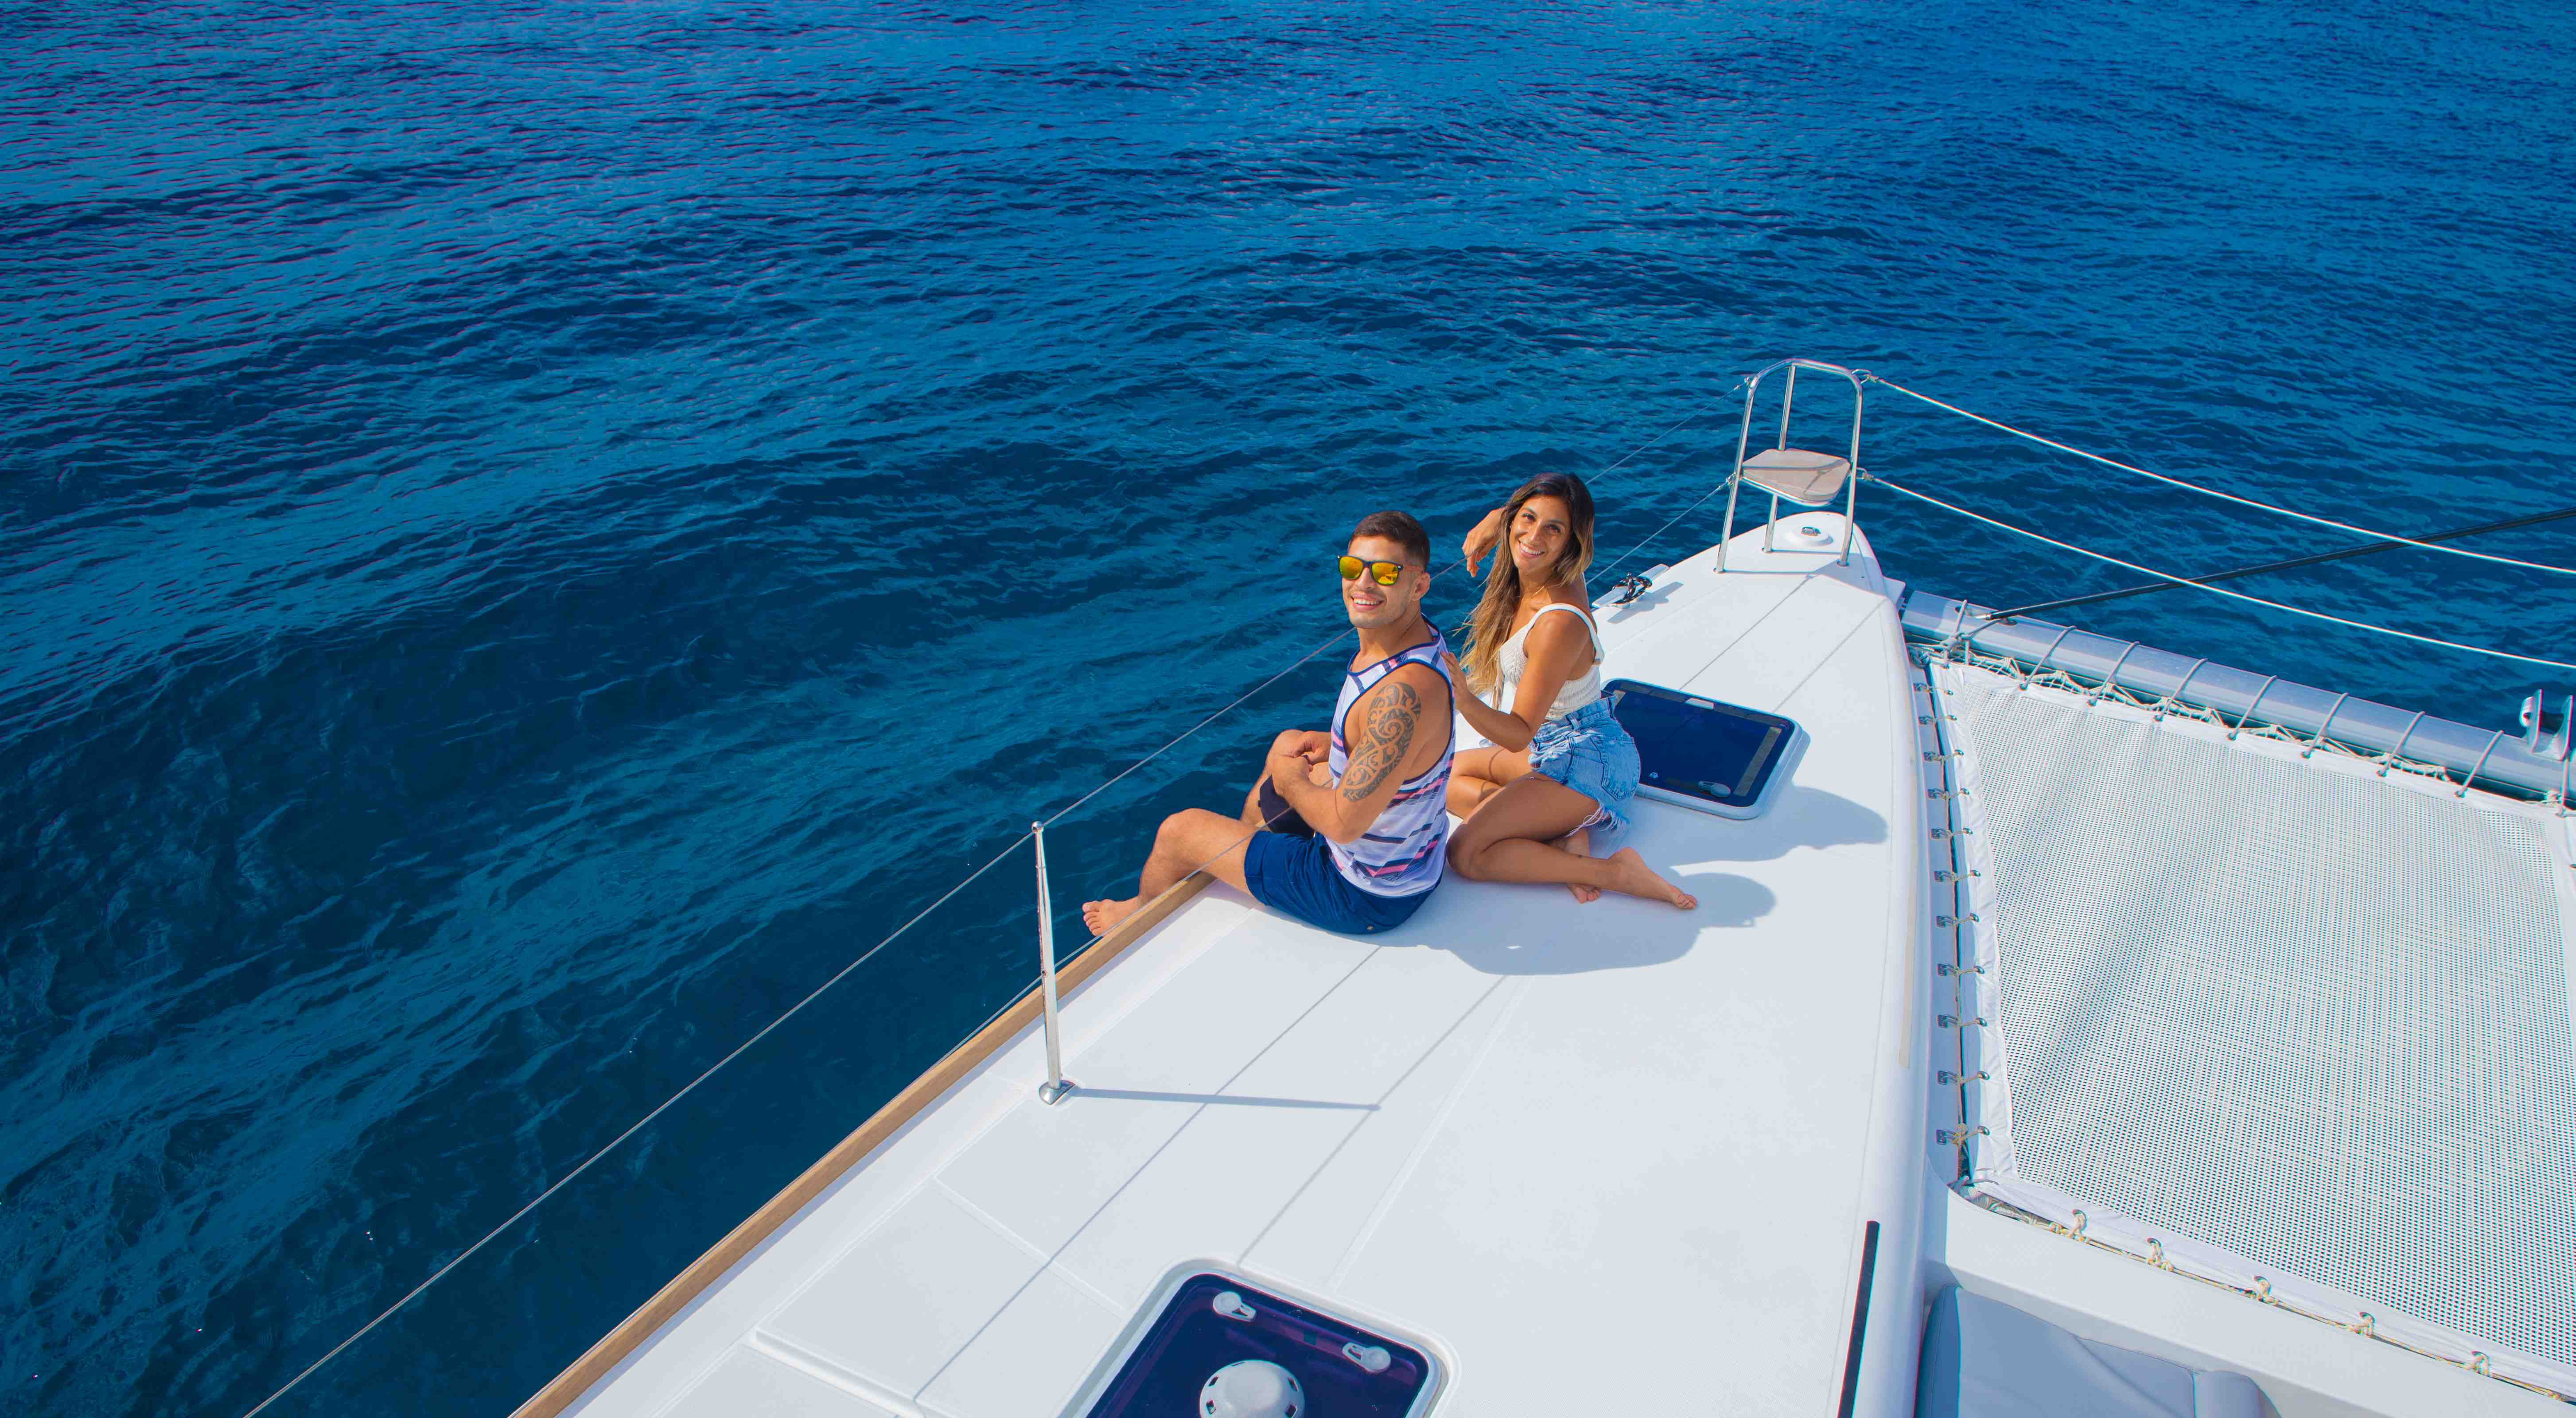 Tour Cozumel Luxury Sailing Snorkeling - Last Minute Tours in Cancún and Riviera Maya